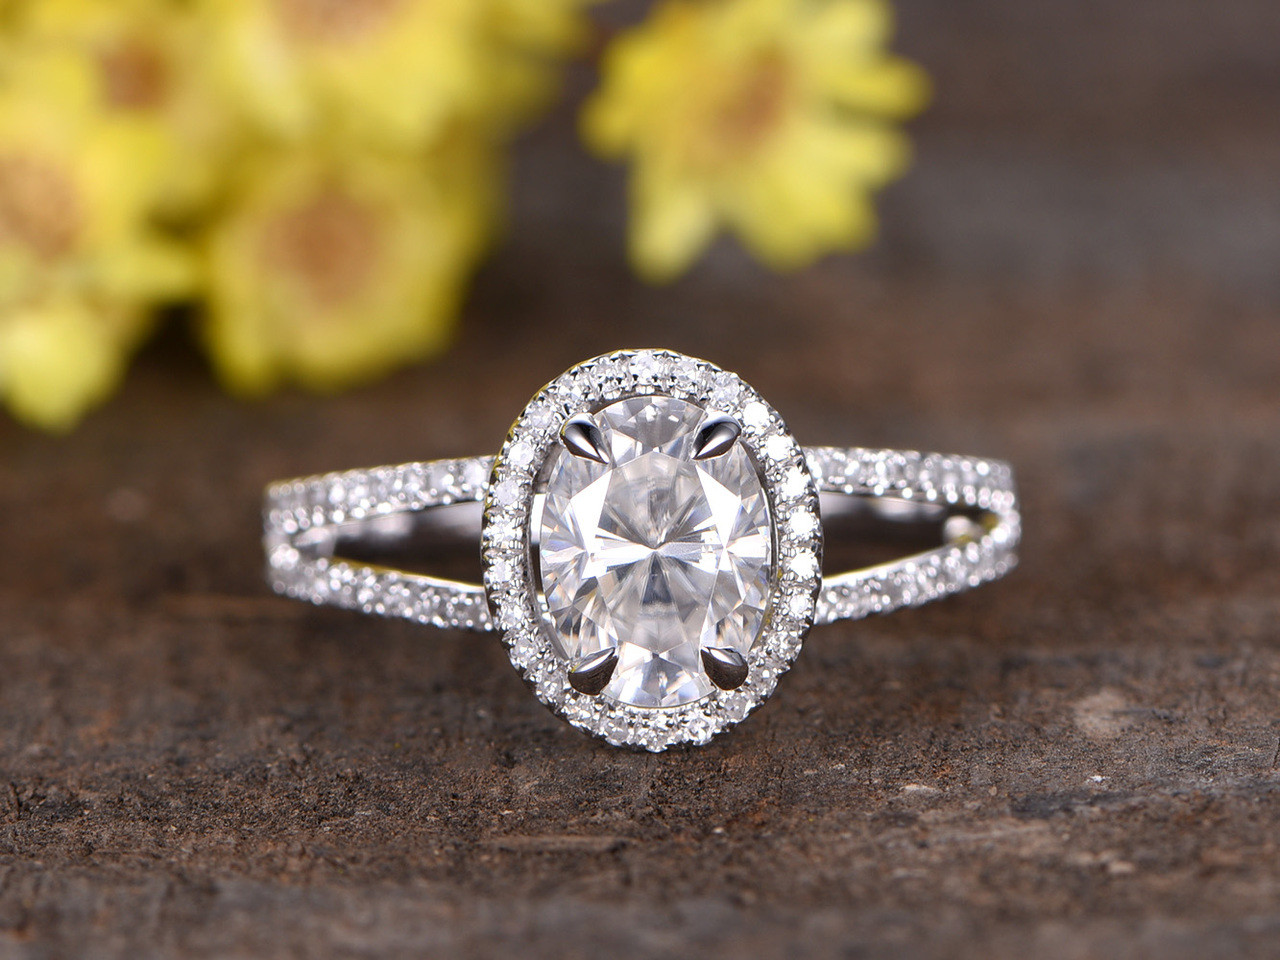 lab in lively rings ciara oval quorri ring diamond wedding by inspired blake diamanti engagement halo at solitaire products canada